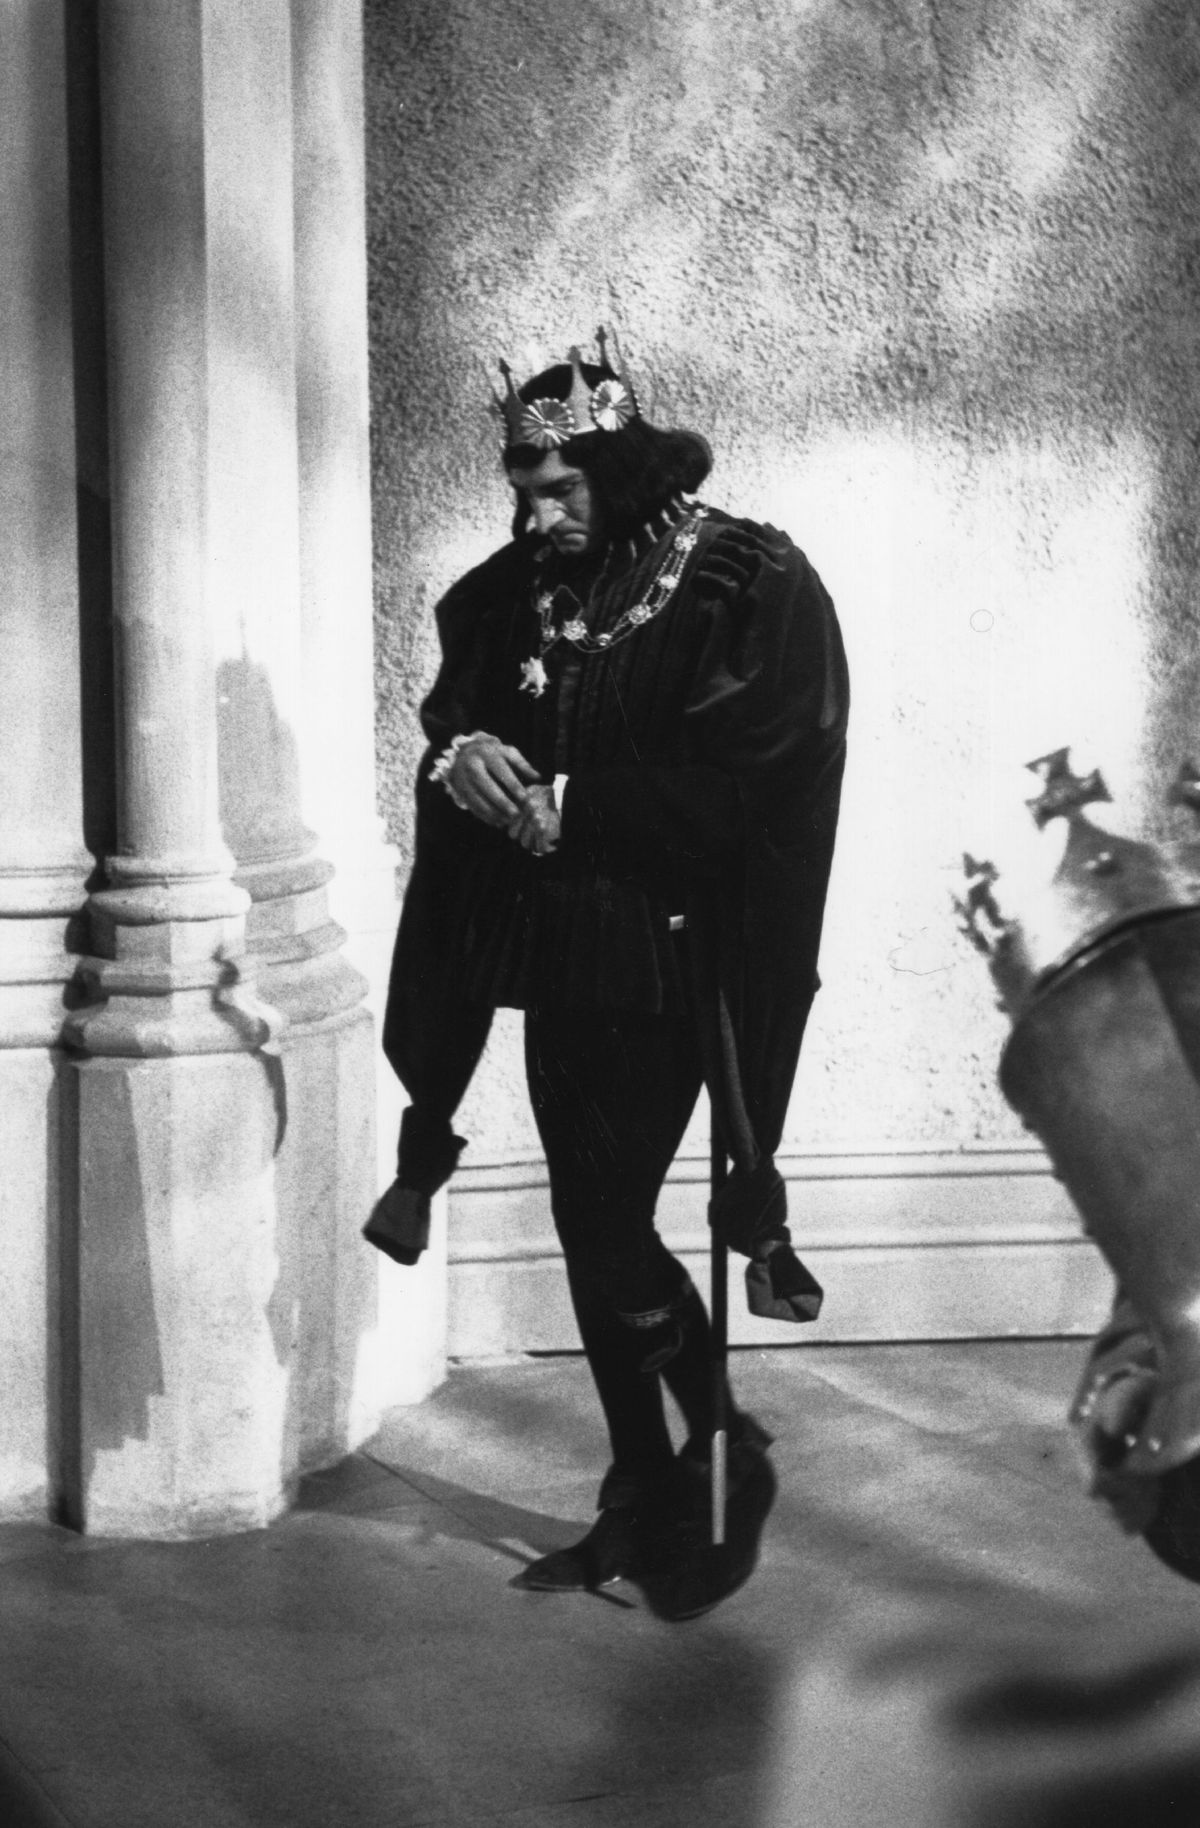 Laurence Olivier, dressed as King Richard III, stands alone.